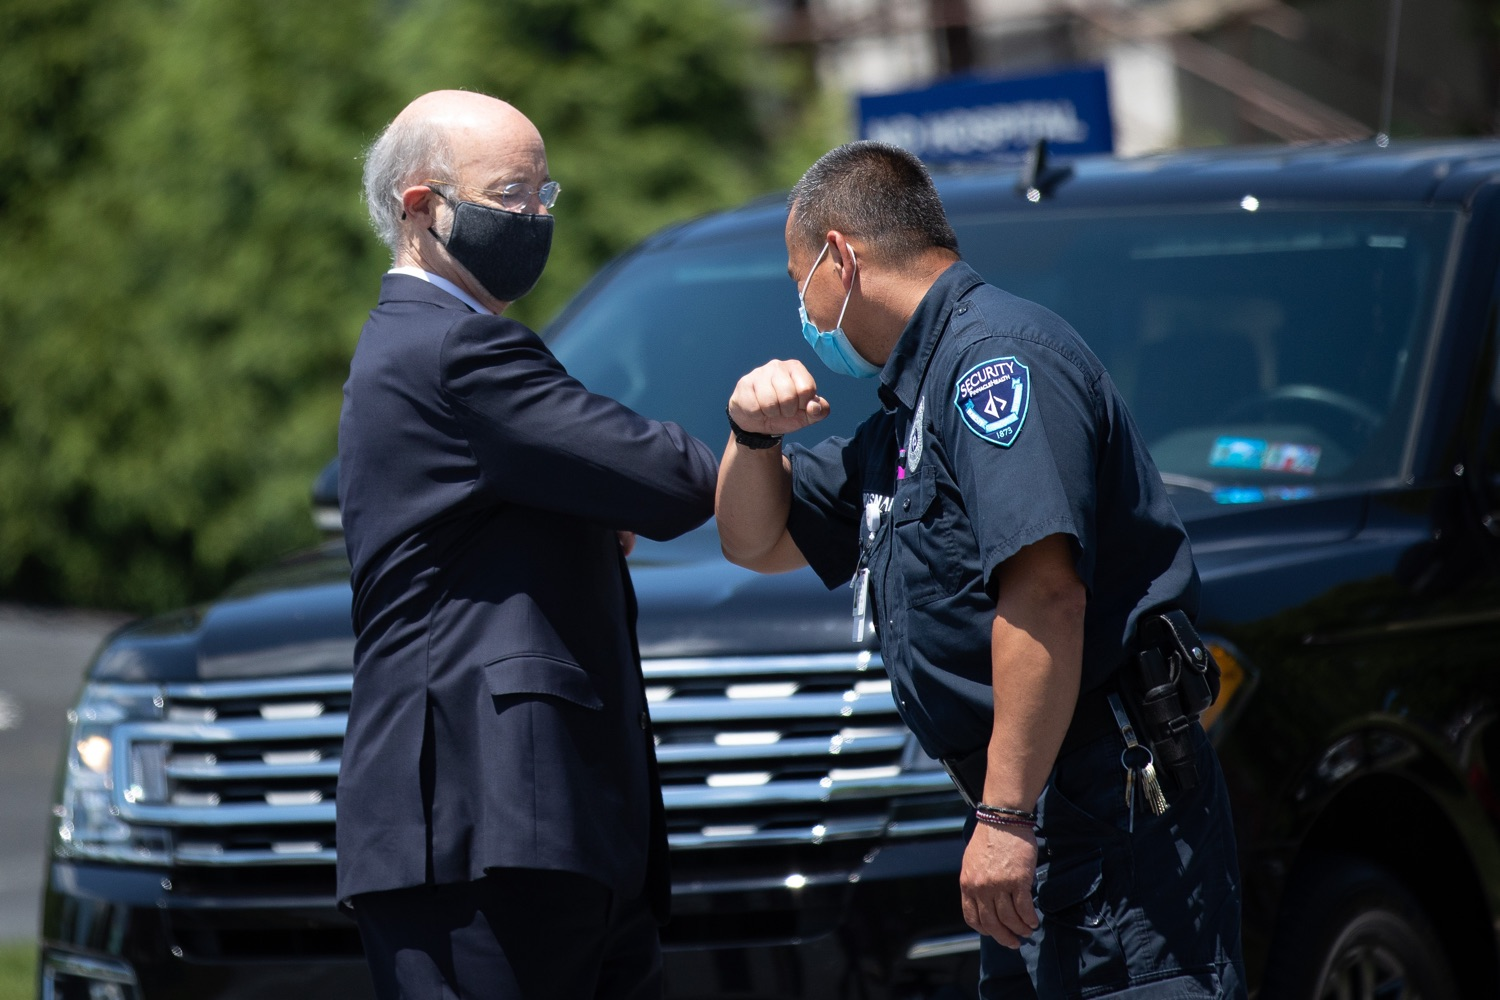 "<a href=""https://filesource.wostreaming.net/commonwealthofpa/photo/18101_gov_healthcare_dz_12.jpg"" target=""_blank"">⇣ Download Photo<br></a>Pennsylvania Governor Tom Wolf greeting security before speaking at UPMC Pinnacle Community Osteopathic. As health care professionals work the front lines of the COVID-19 pandemic and the commonwealth continues to emphasize the importance of mask-wearing and social distancing to protect all, Governor Tom Wolf today visited UPMC Pinnacle Community Osteopathic Hospital in Harrisburg to thank staff and stress why mask-wearing is a necessary requirement to fight the spread of COVID-19.    Harrisburg, PA  June 29, 2020"